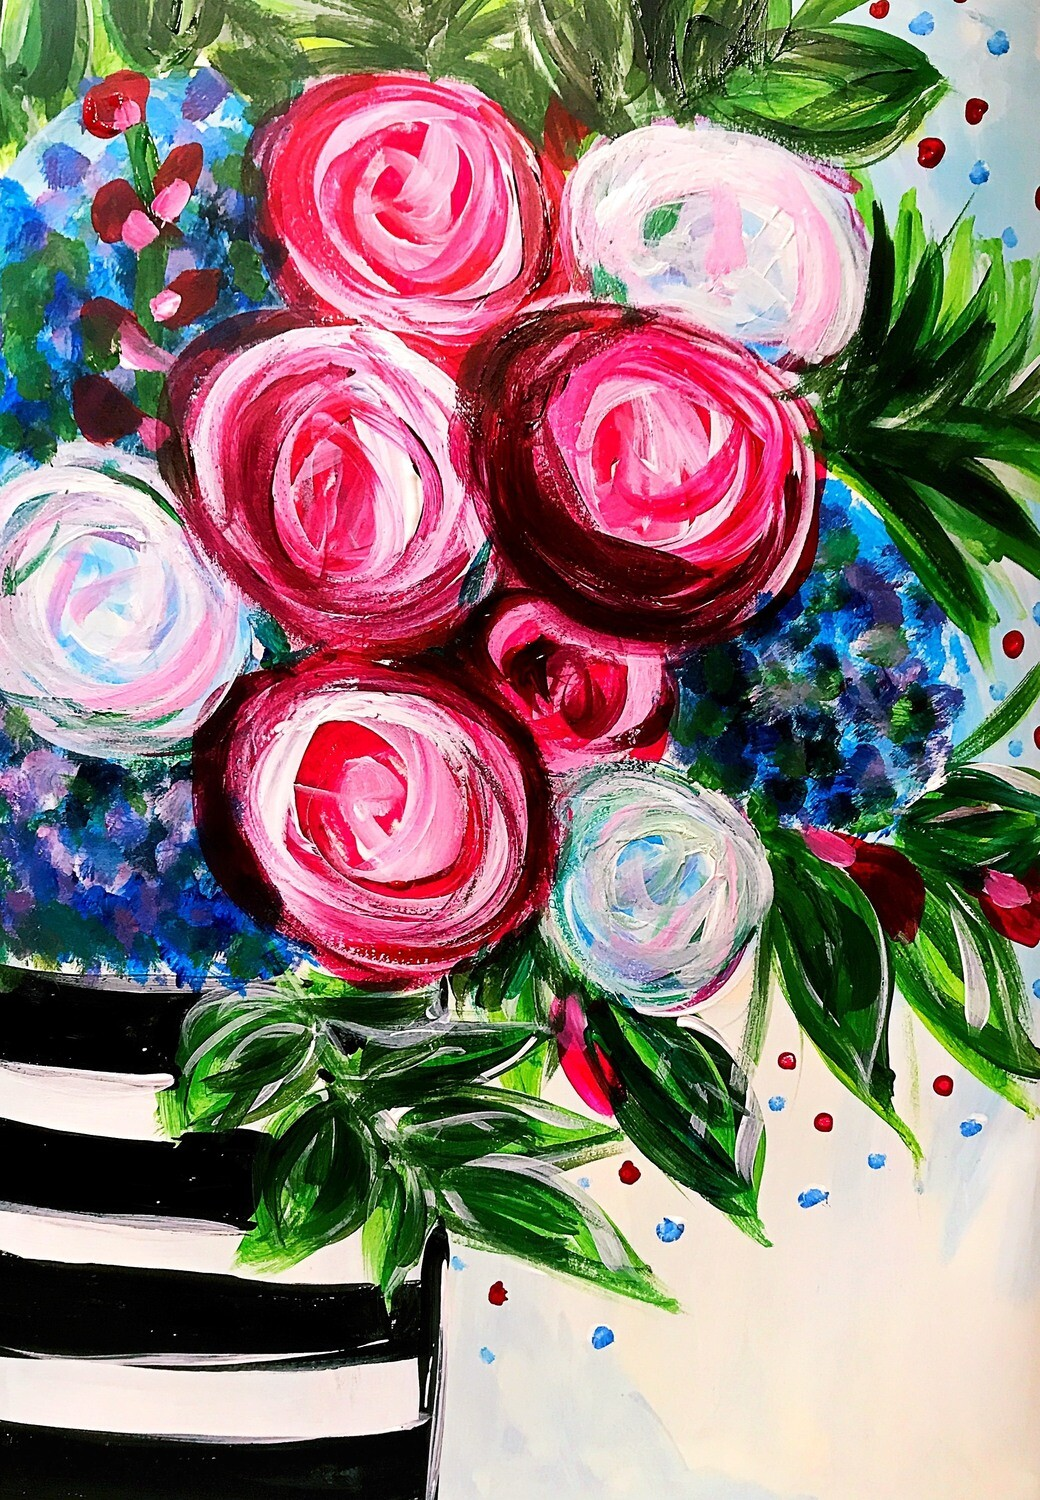 Paint pARTy at Greenhouse Tavern, Mon. 5th Oct 6pm